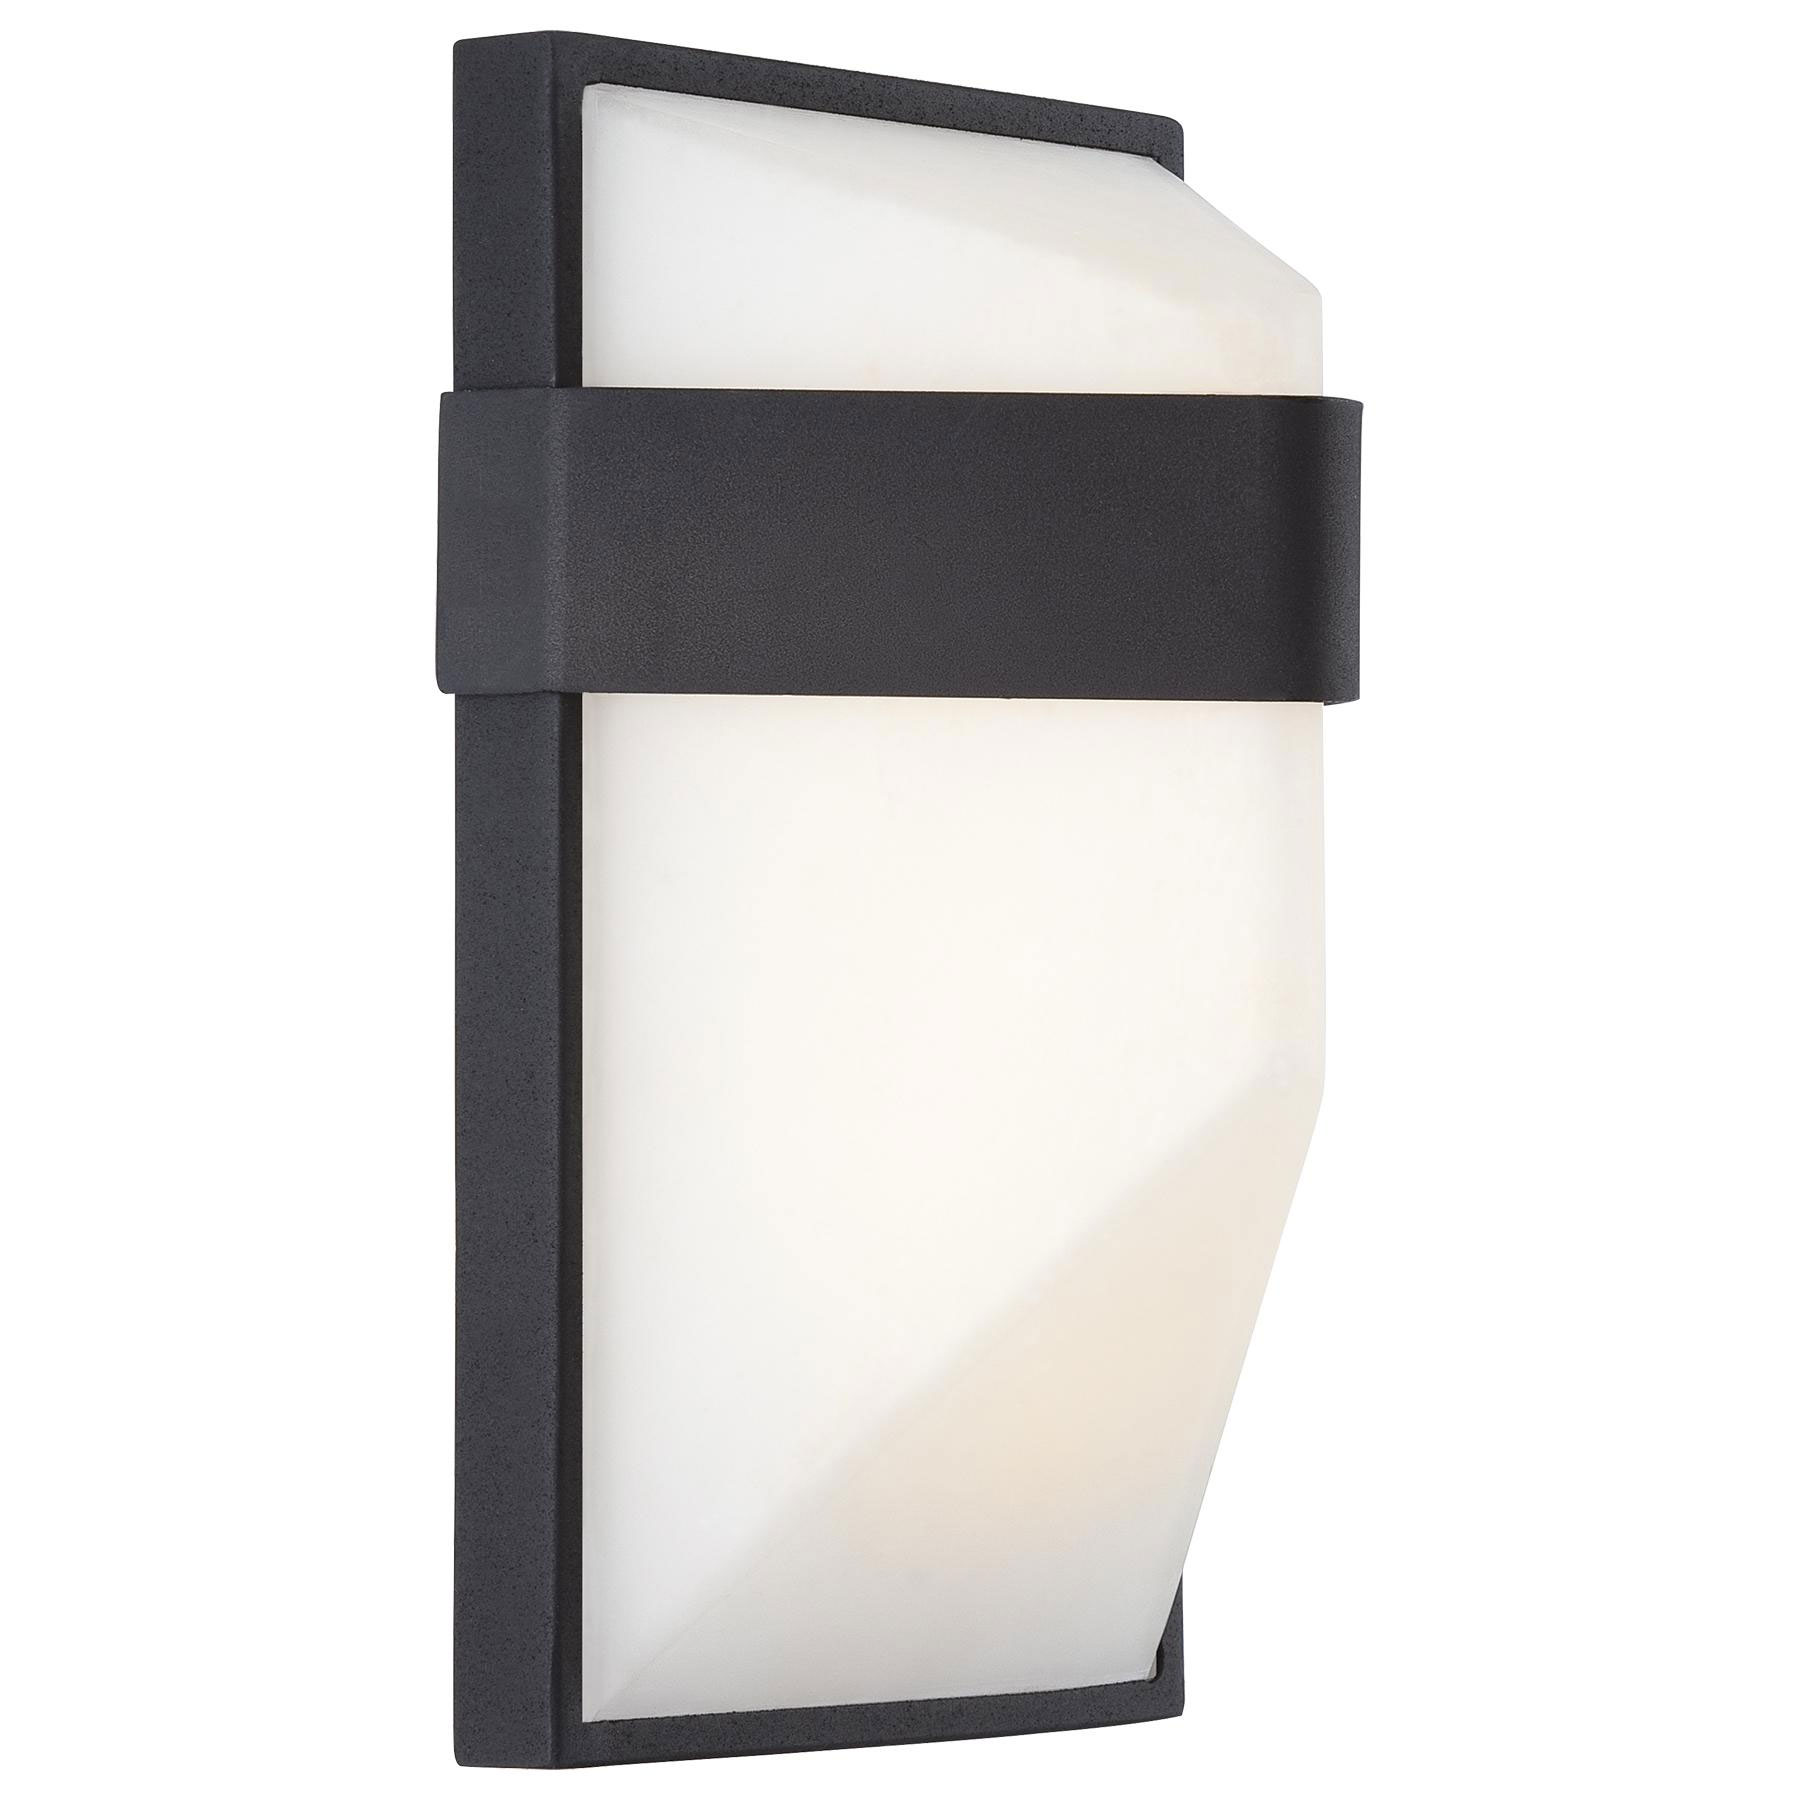 Wedge Exterior Wall Lights : Wedge Outdoor LED Wall Sconce by George Kovacs P1236-066-L